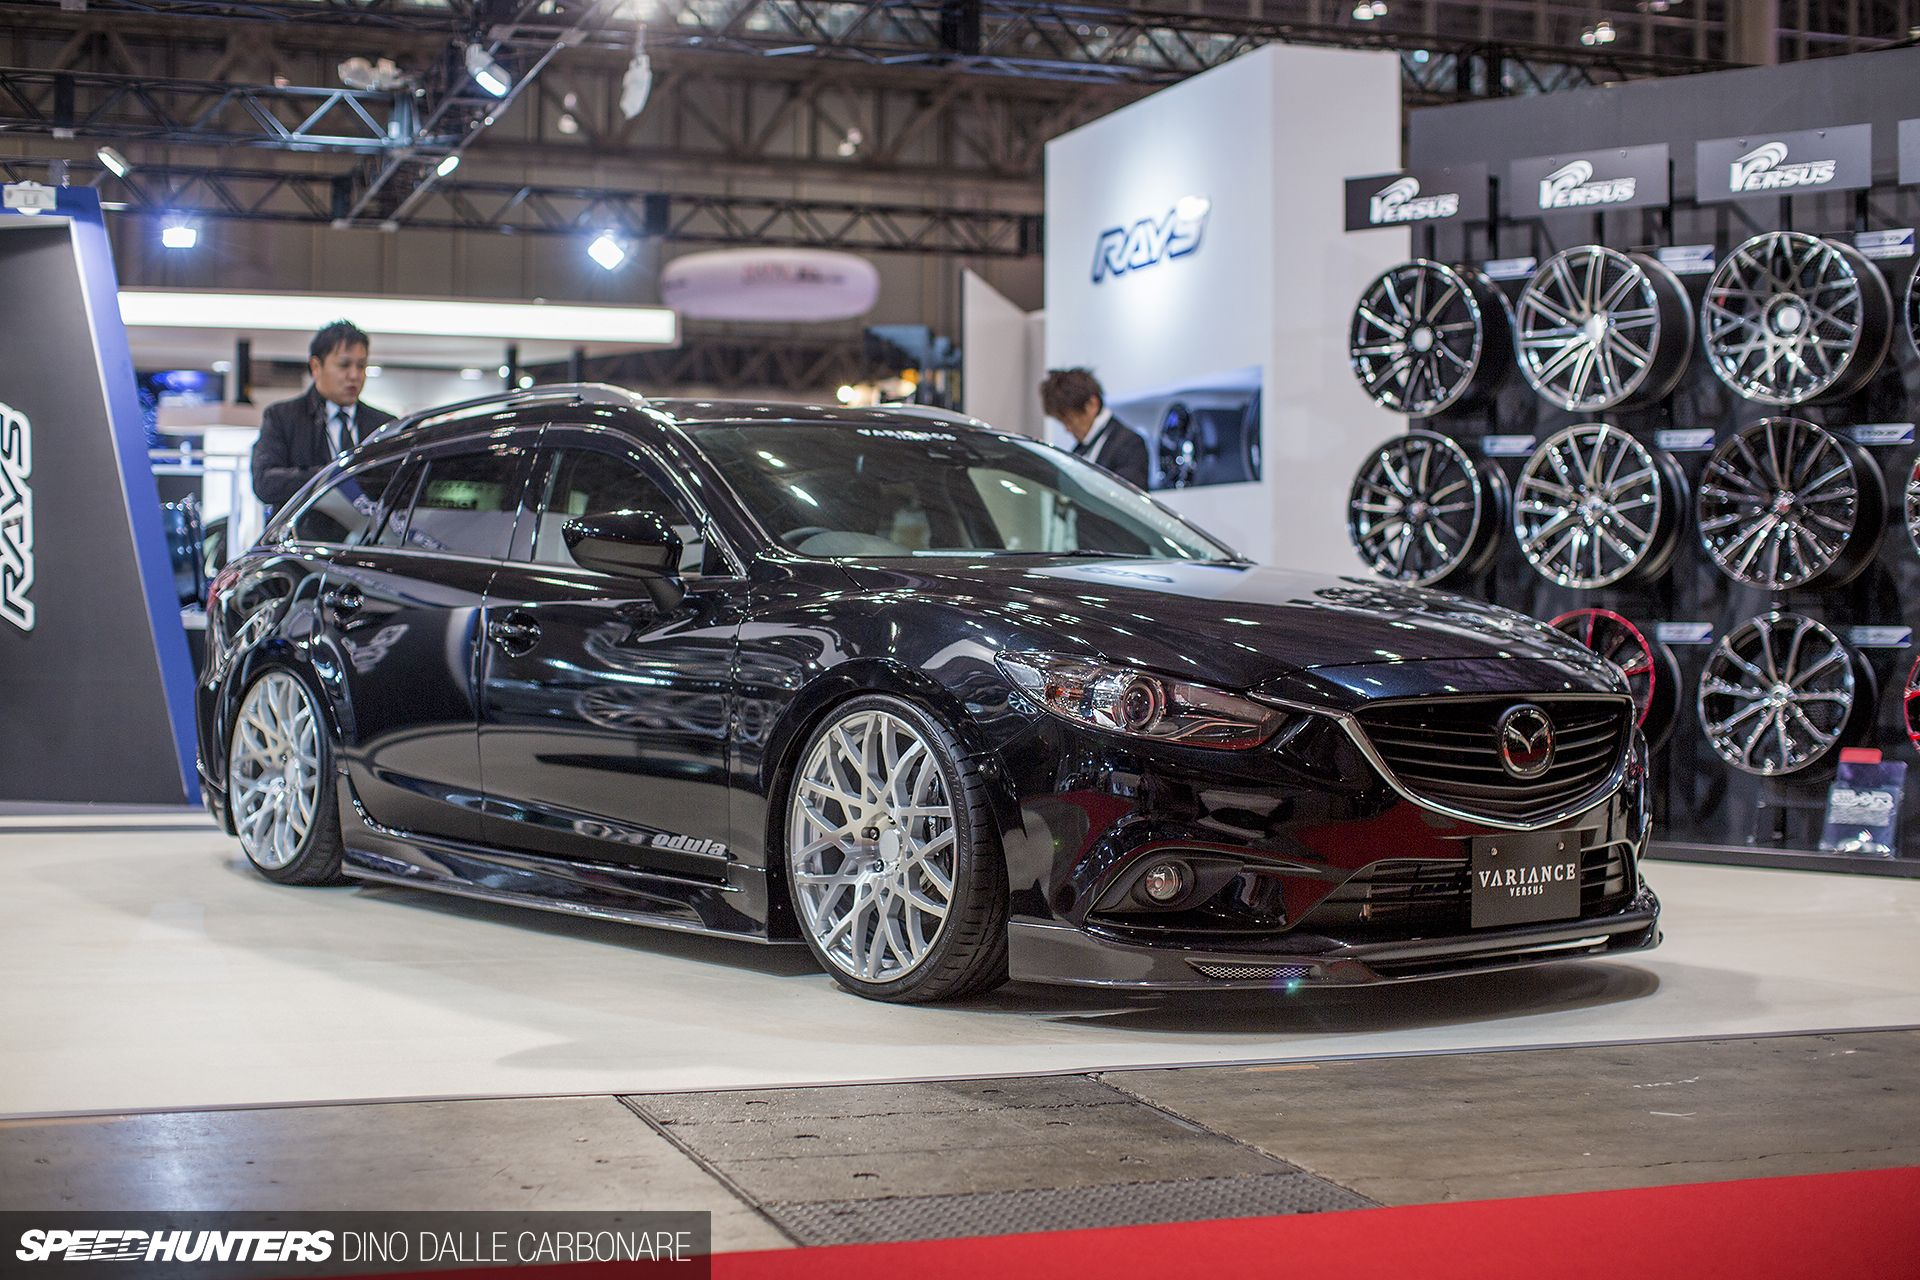 Marvelous 2014 Mazda 6 Picture Thread   Page 96   Mazda 6 Forums : Mazda 6 Forum